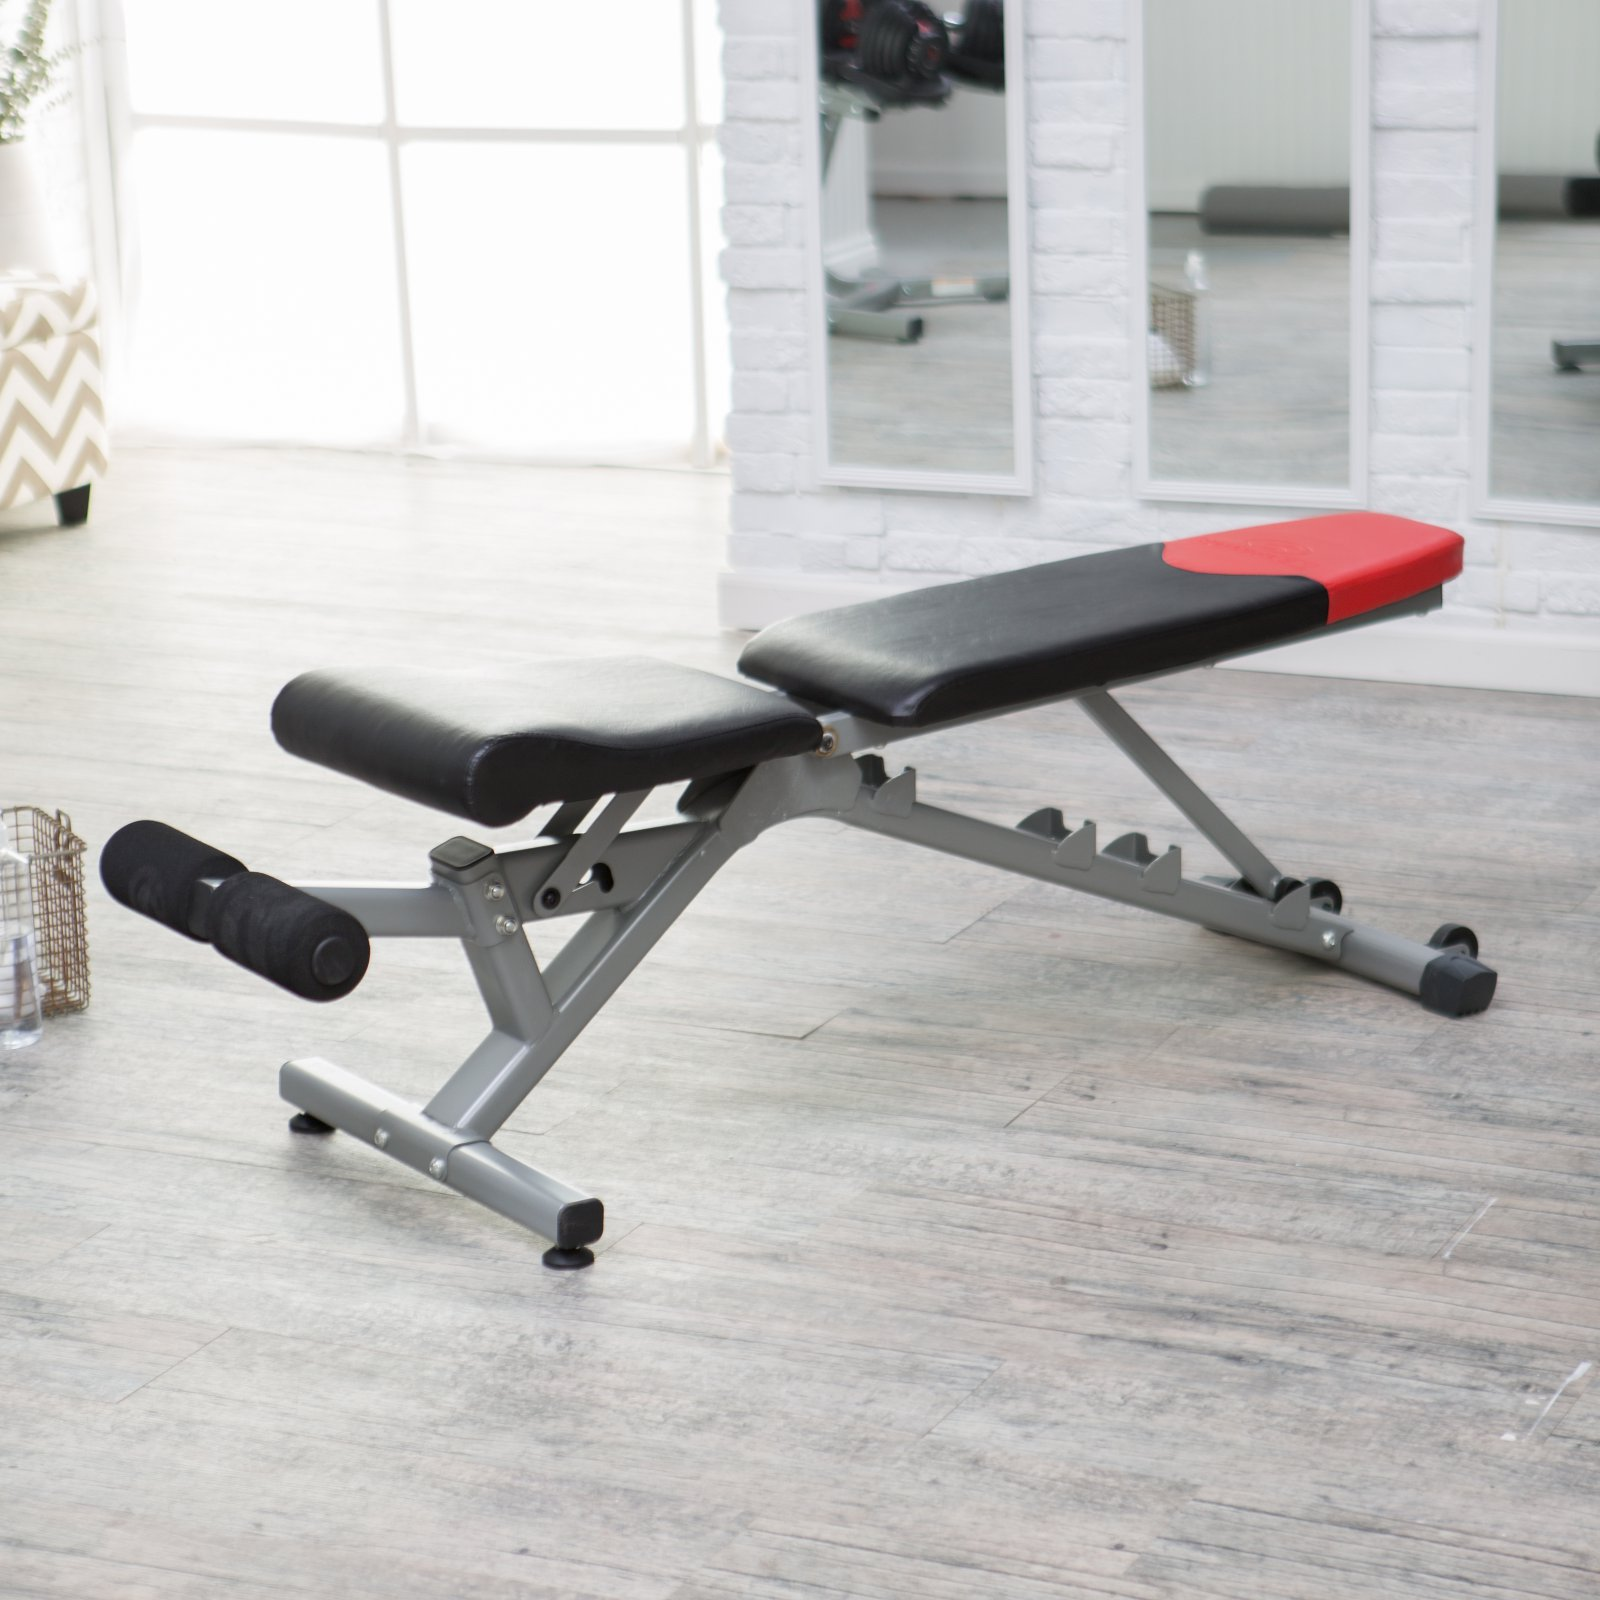 Bowflex Selecttech 4 1 Adjustable Bench Review Drenchfit